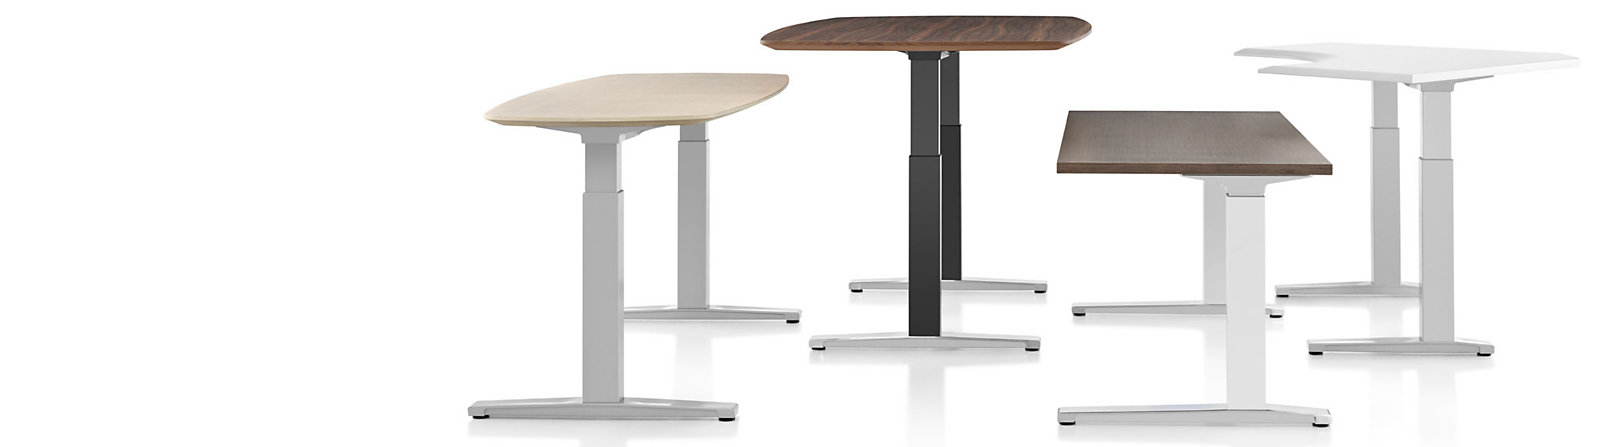 height adjustable office desks | smartfurniture - smart furniture